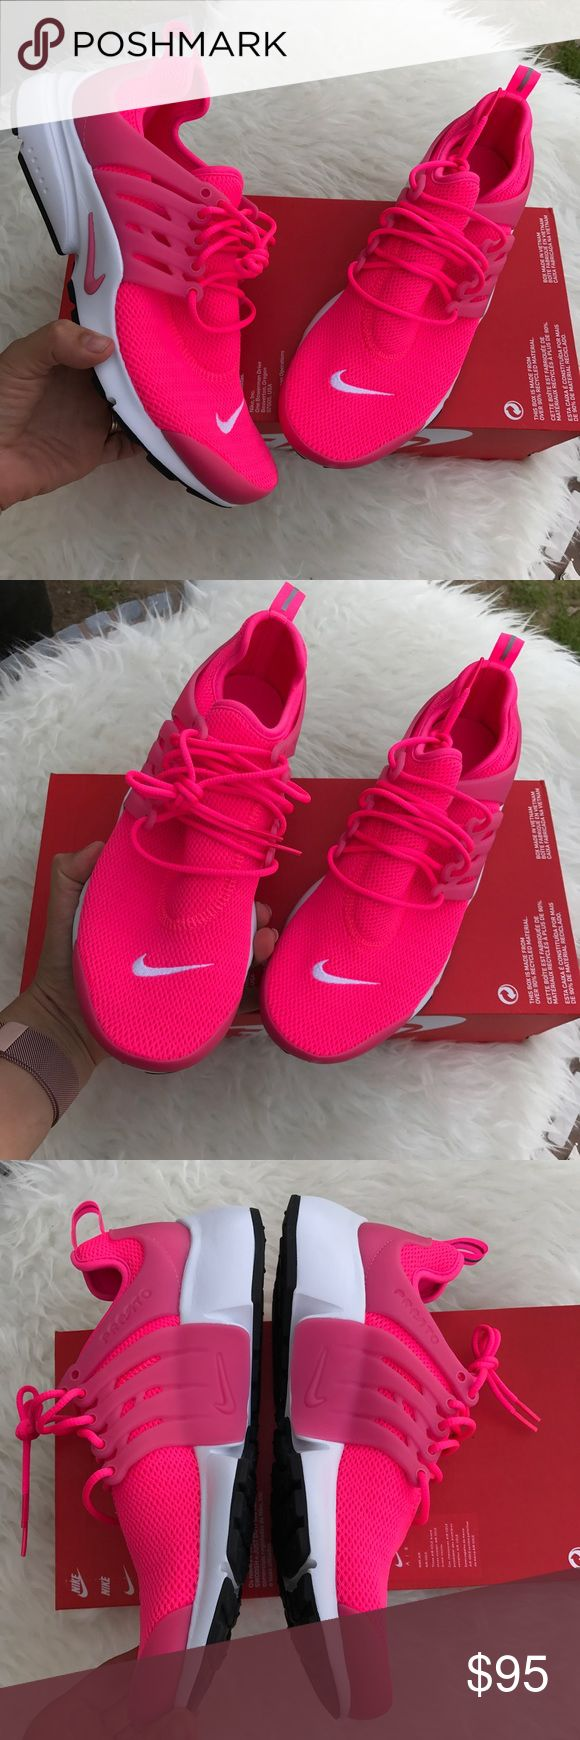 NIKE WOMENS AIR PRESTO Sz 9 new NIKE WOMENS AIR PRESTO Sz 9 new BOX IS MISSING LID 100% authentic! Itemcloset#cindo Nike Shoes